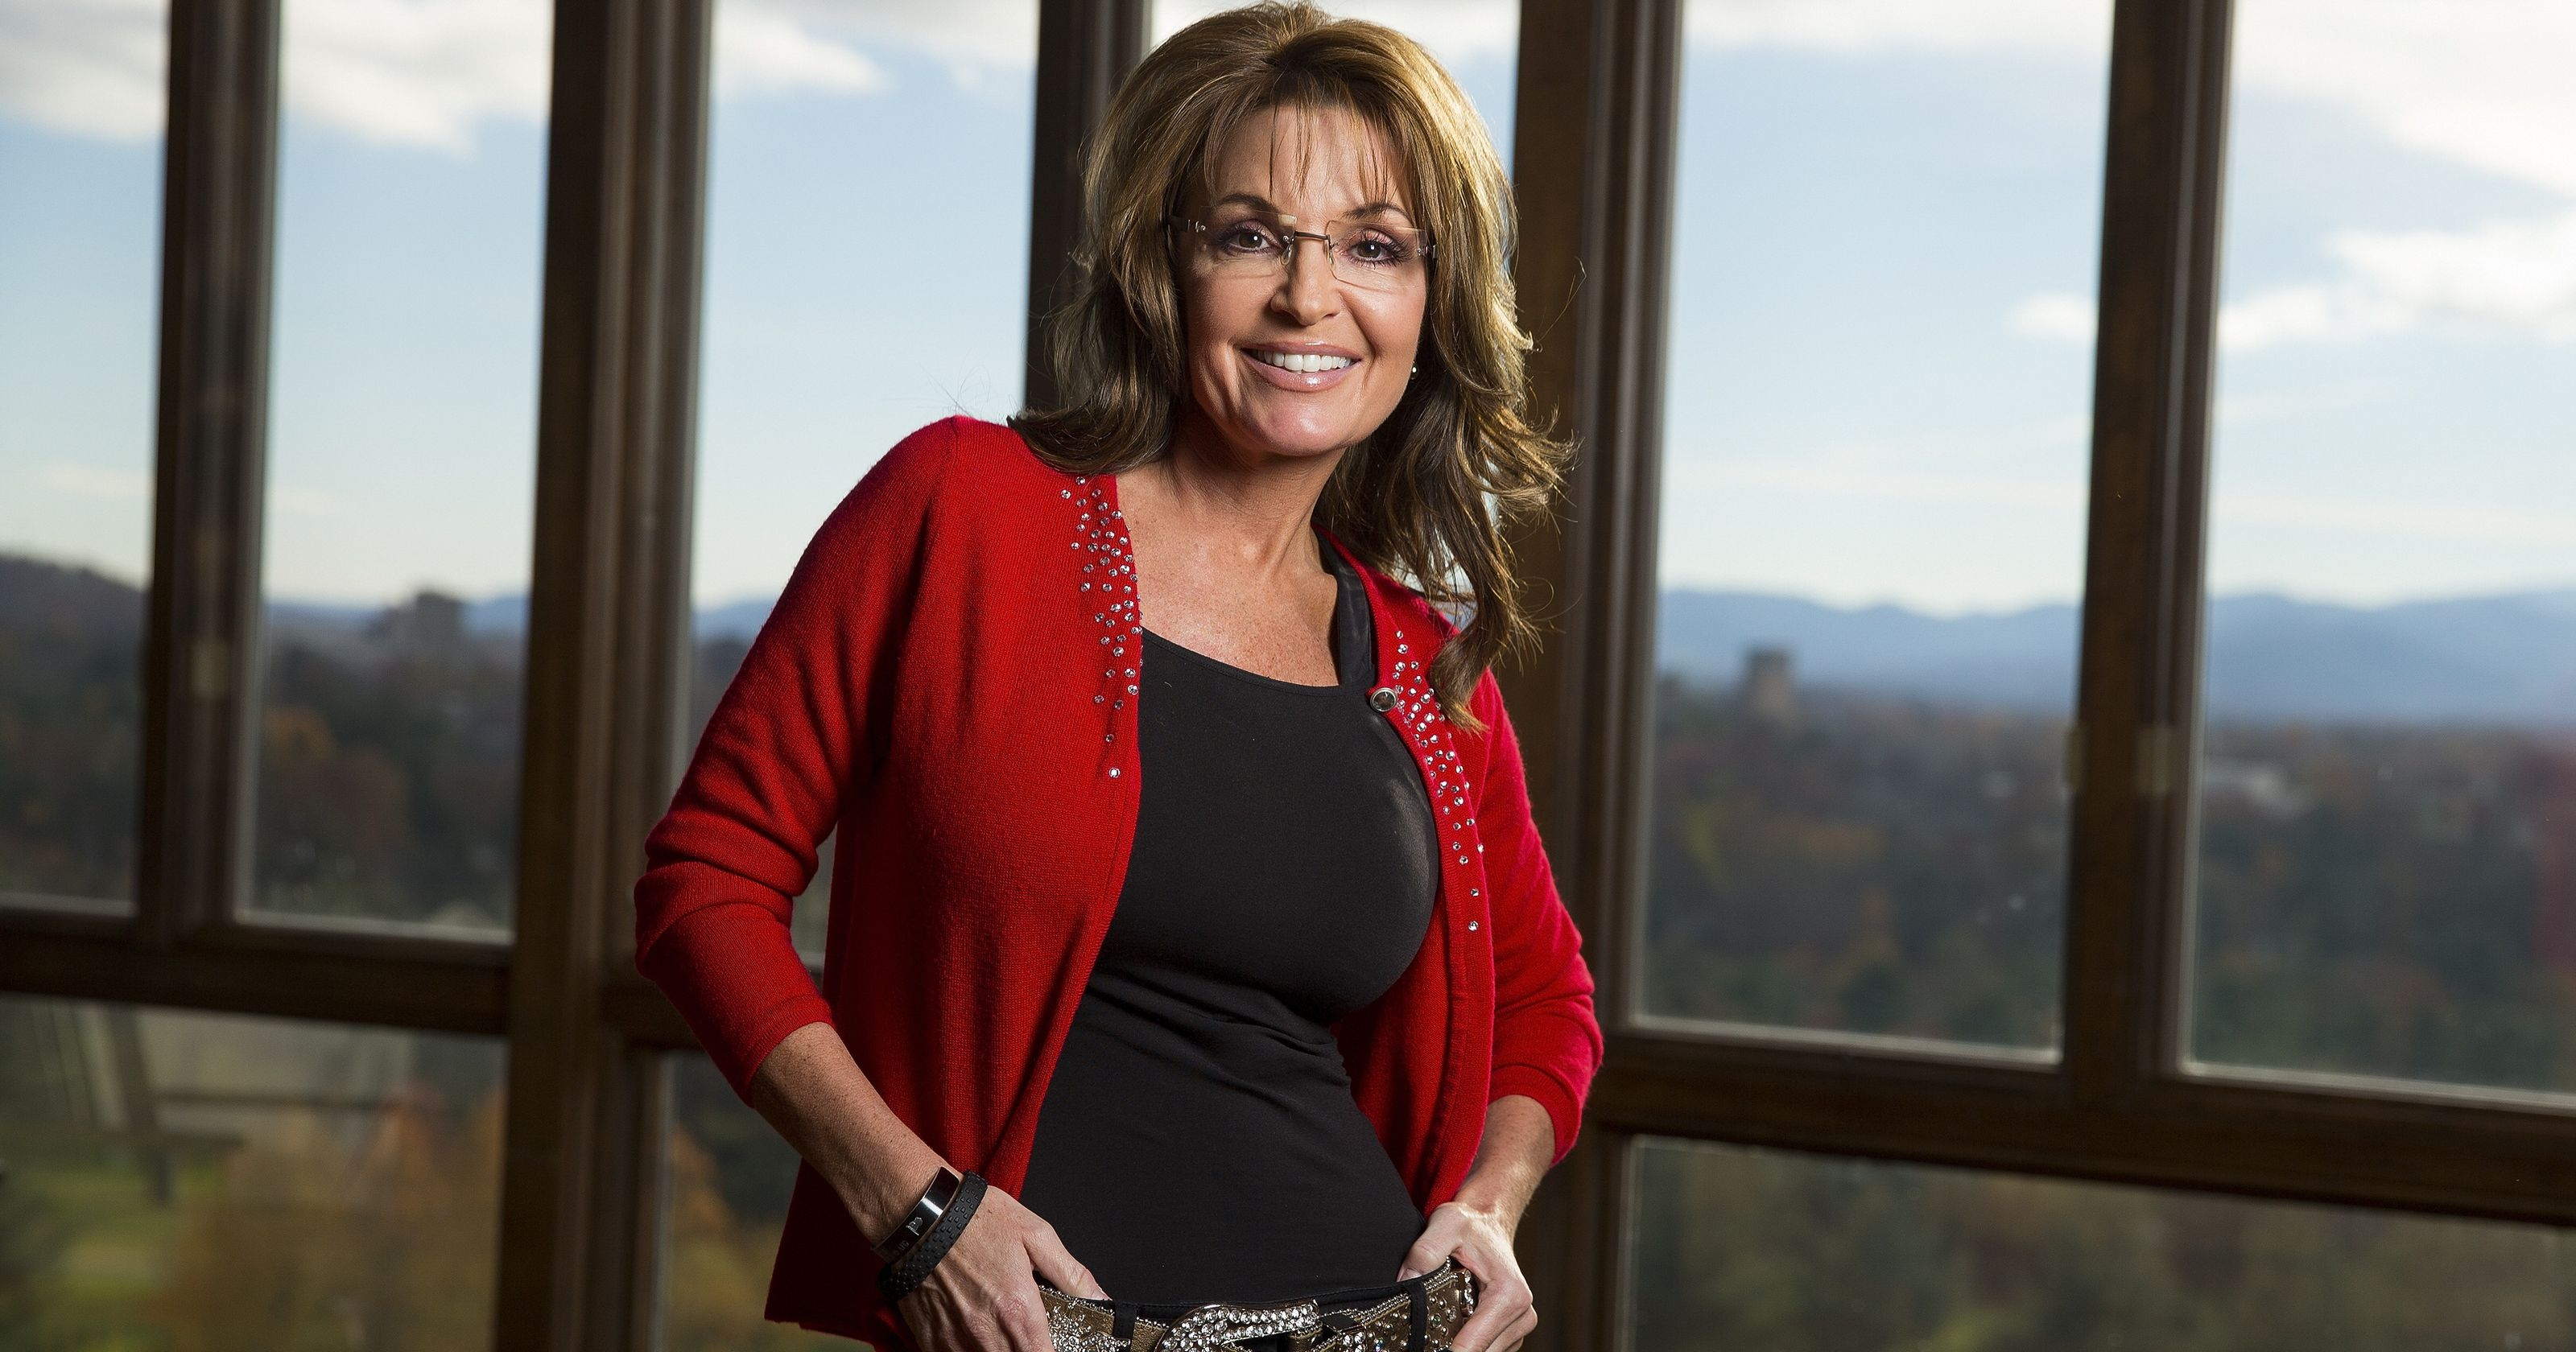 Sarah Palin Hot Bikini Pics, Leaked Near-Nude Photos